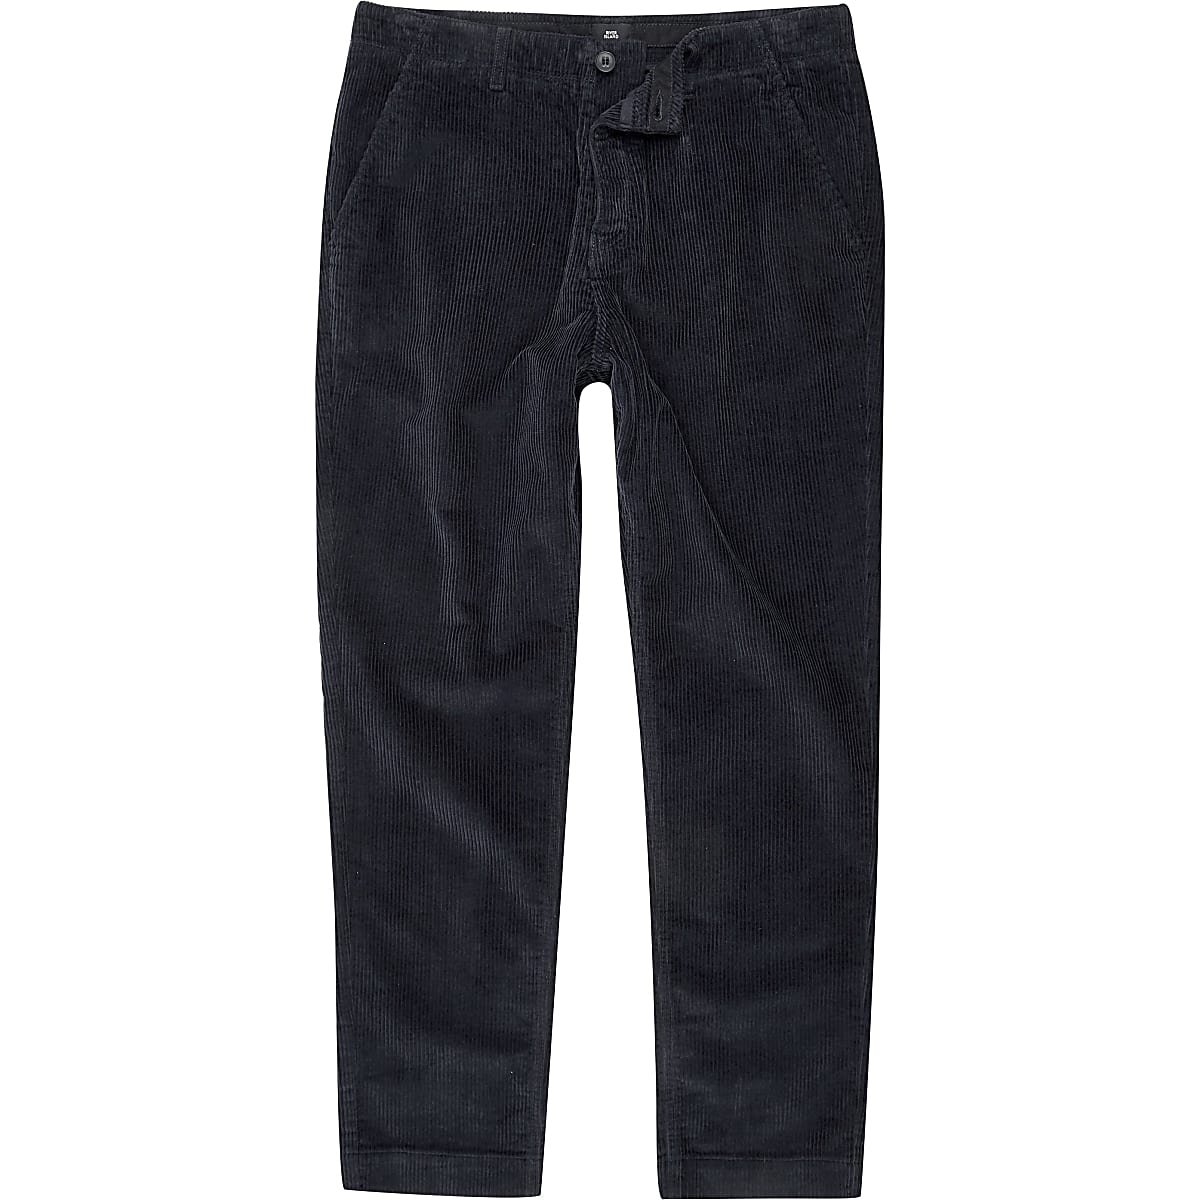 Navy cord tapered trousers